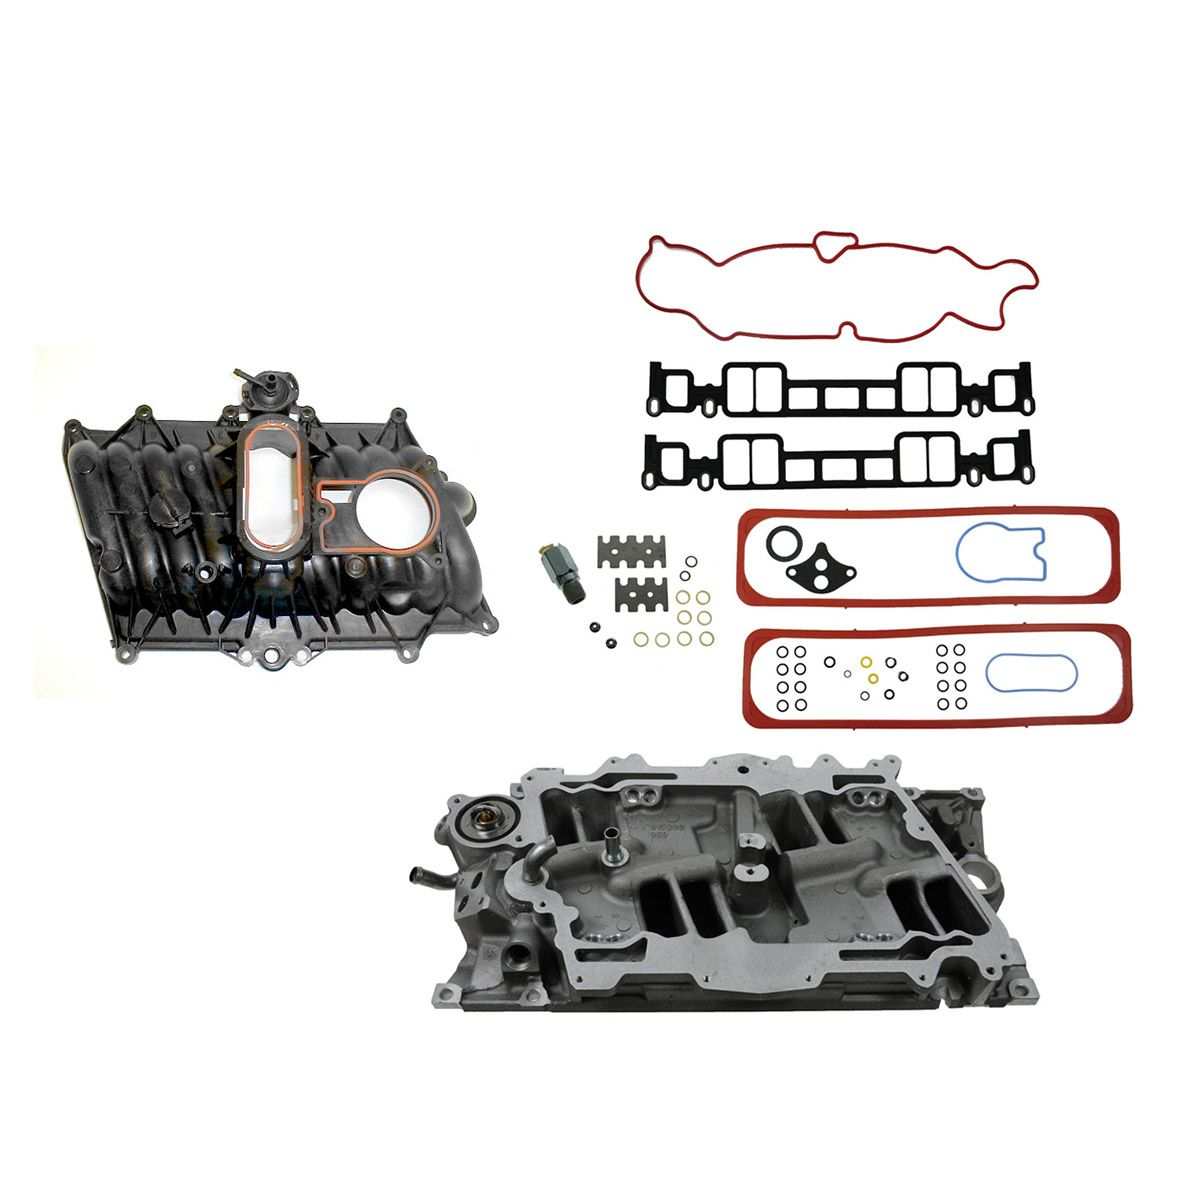 Upper Lower Intake Manifold Set Kit For 96 02 Chevy Gmc Truck Van Suv 5 0l 5 7l